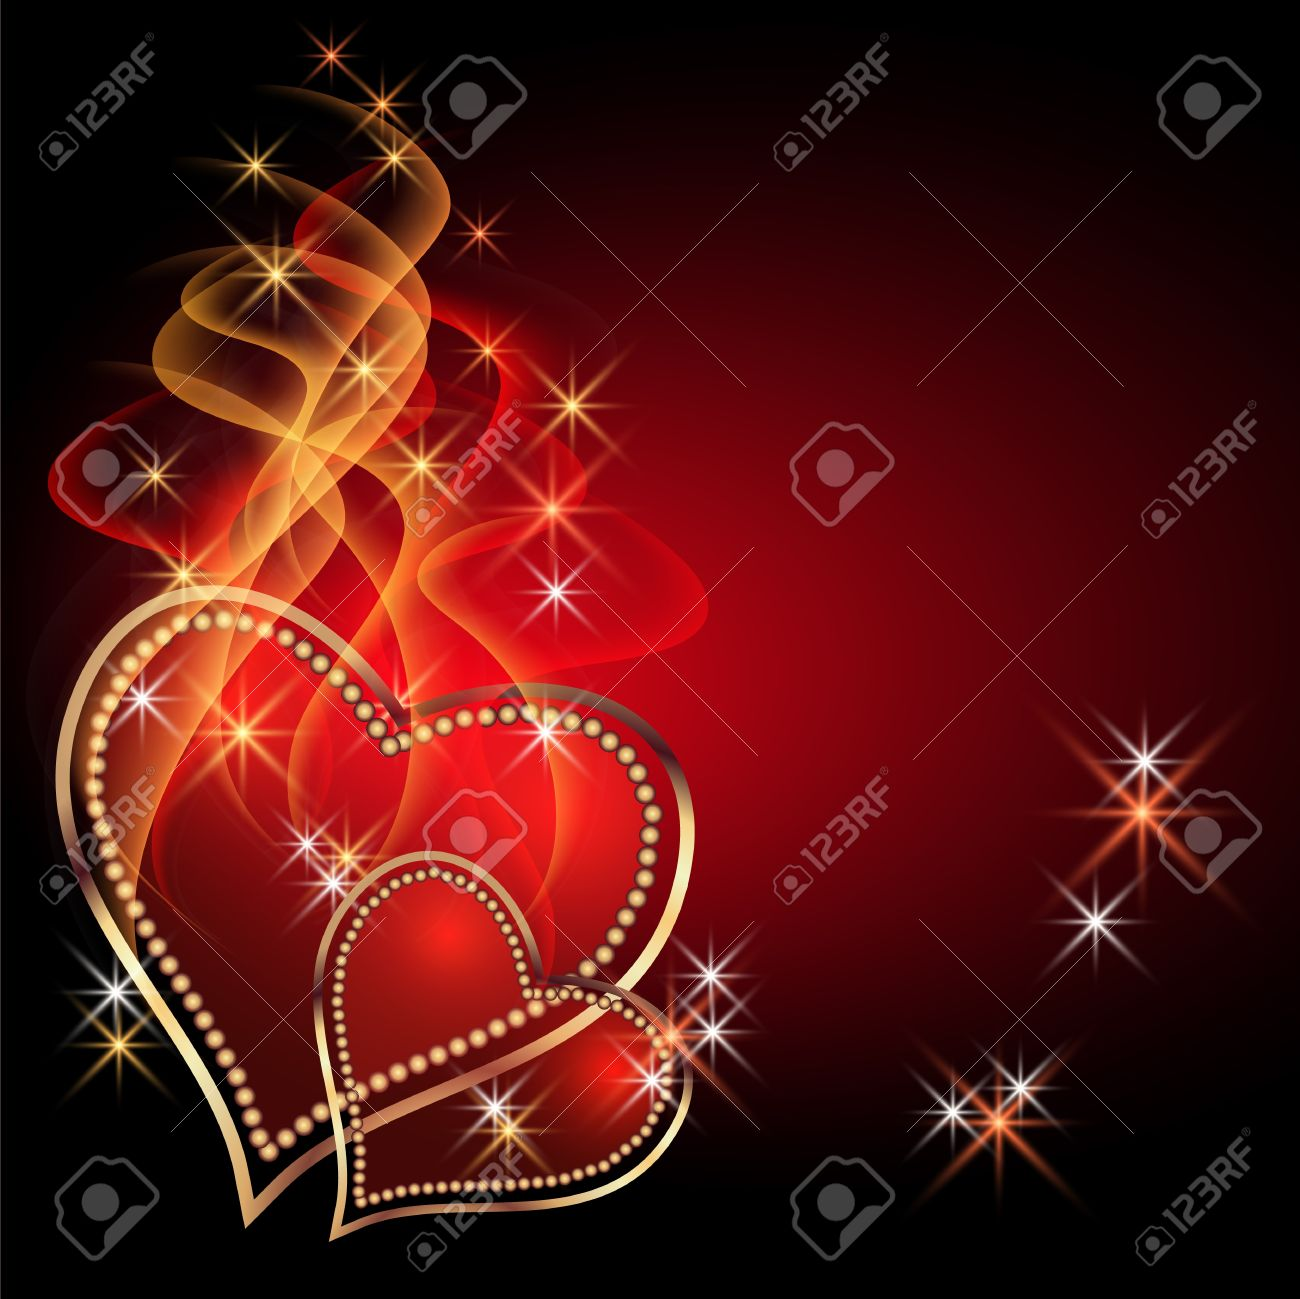 Burning two hearts with decorative smoke Stock Vector - 12168728